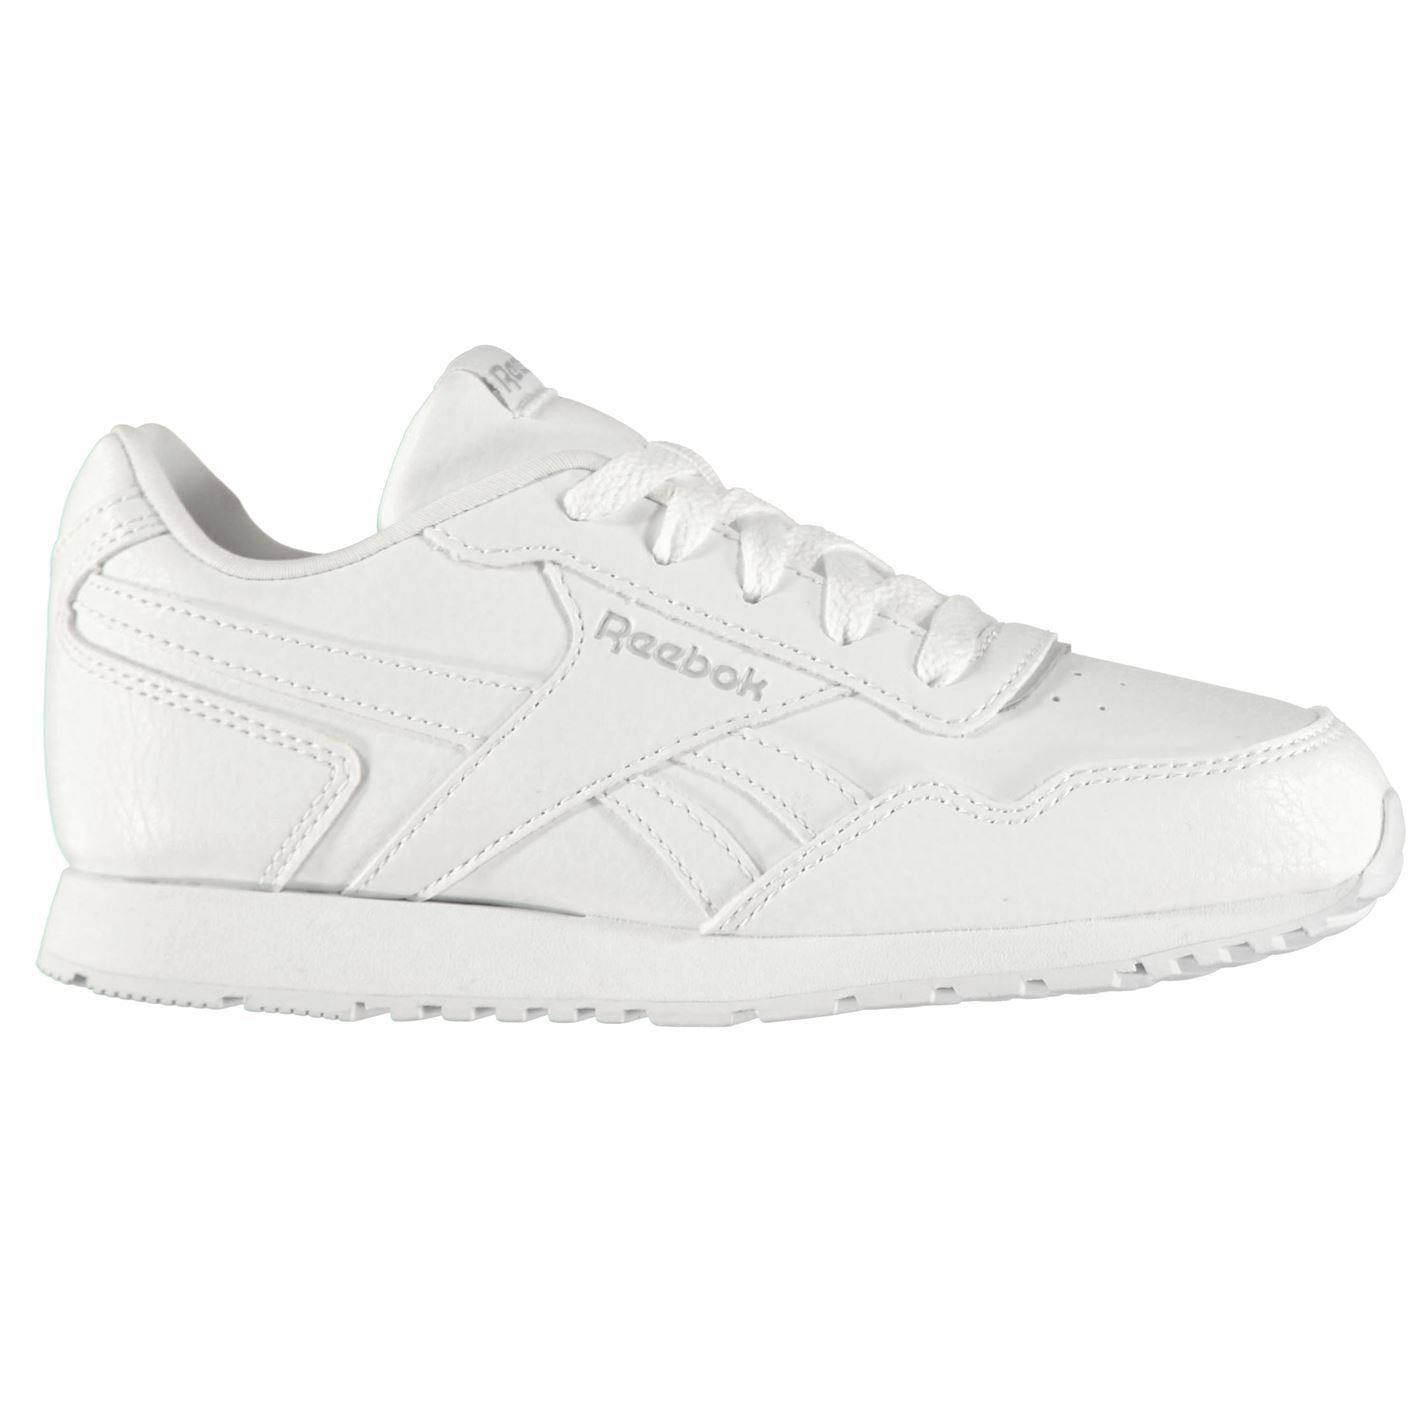 Reebok Classic Glide Junior Trainers Boys Shoes Casual White